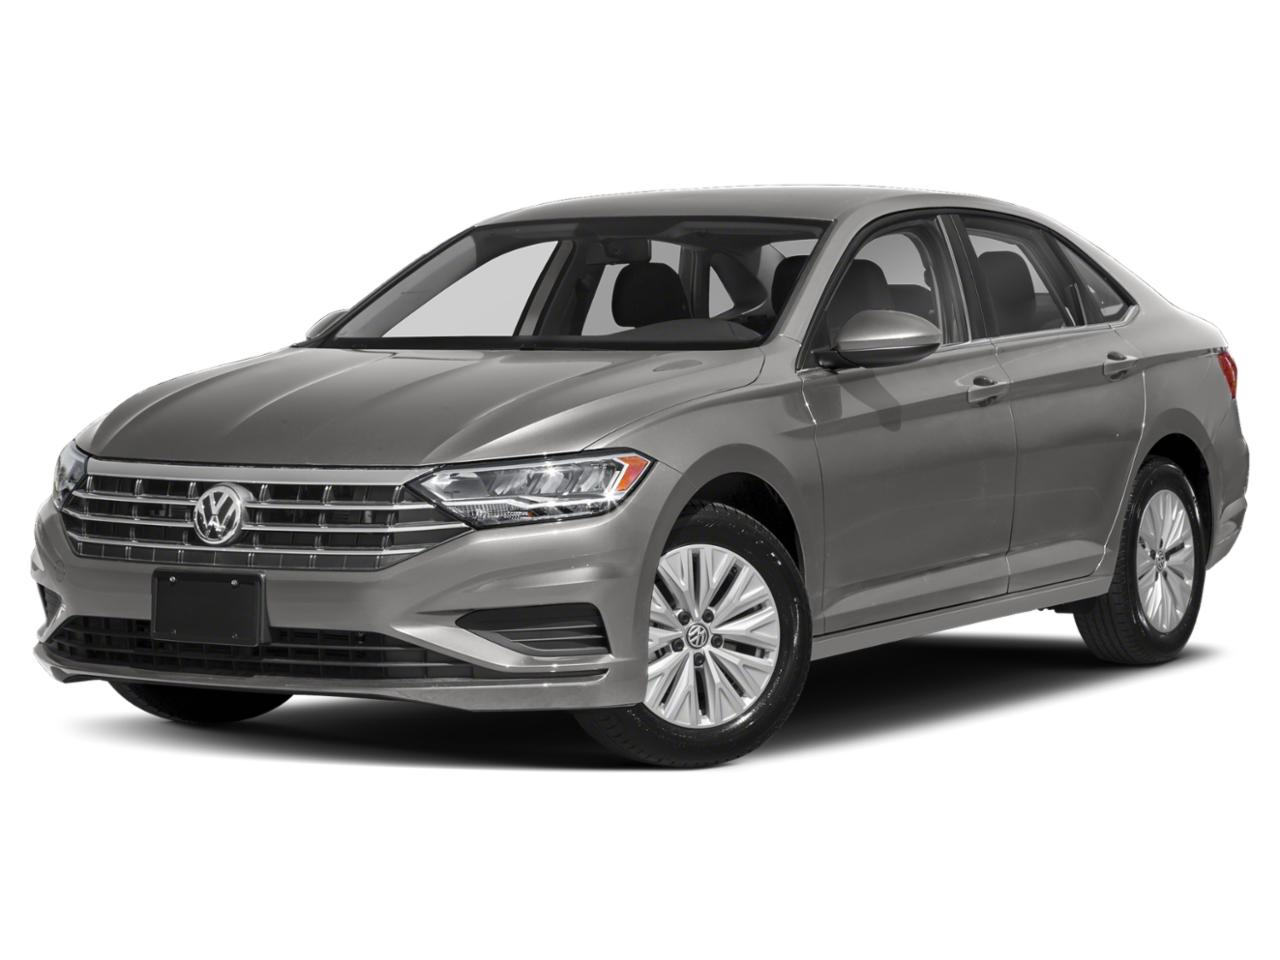 2021 Volkswagen Jetta Vehicle Photo in Union City, GA 30291